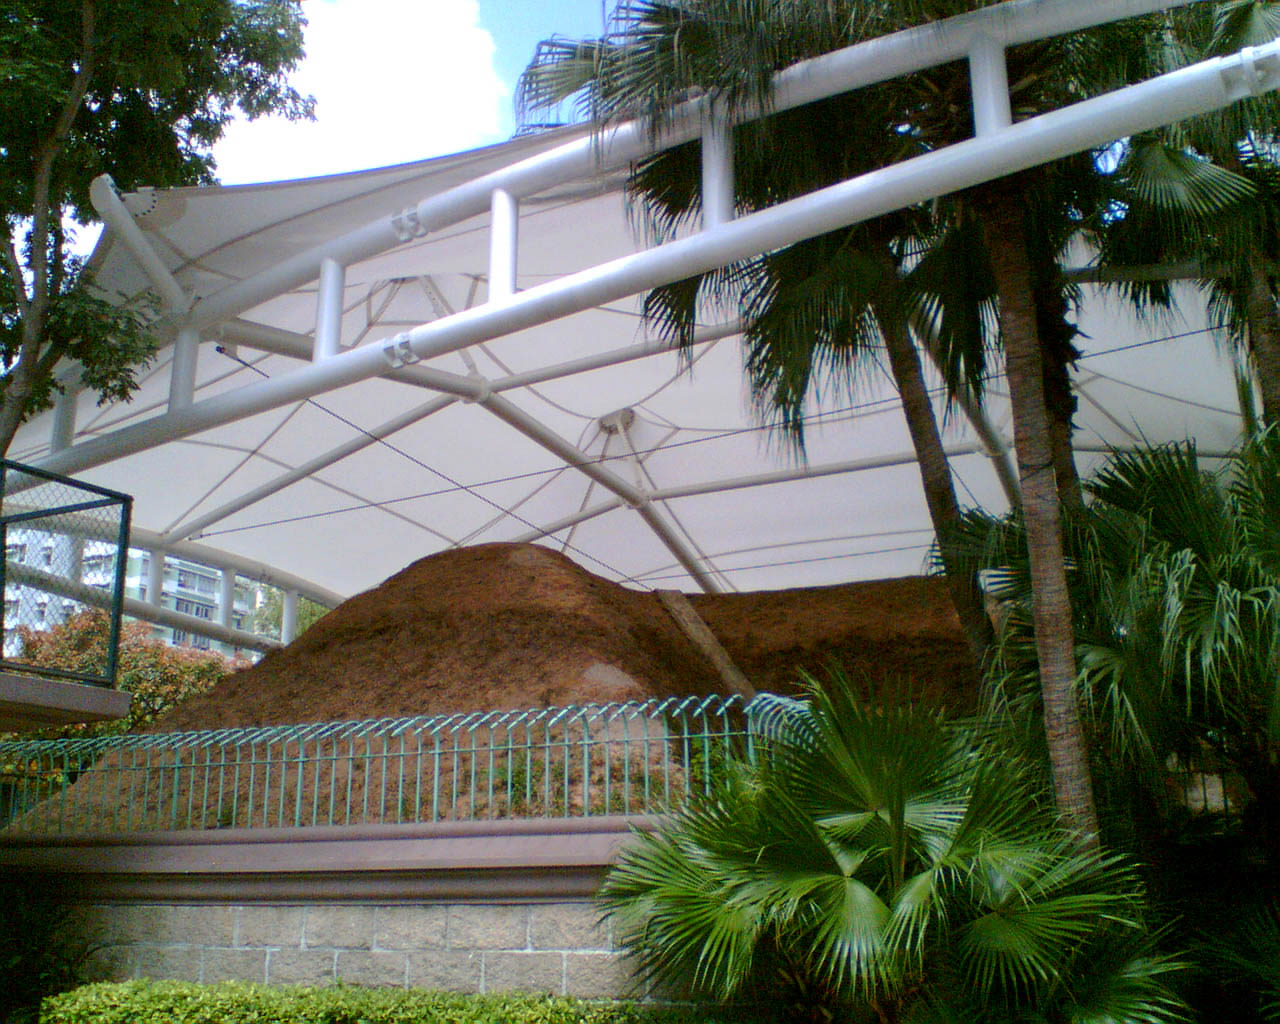 Outside view of an ancient tomb museum with protective canopy.